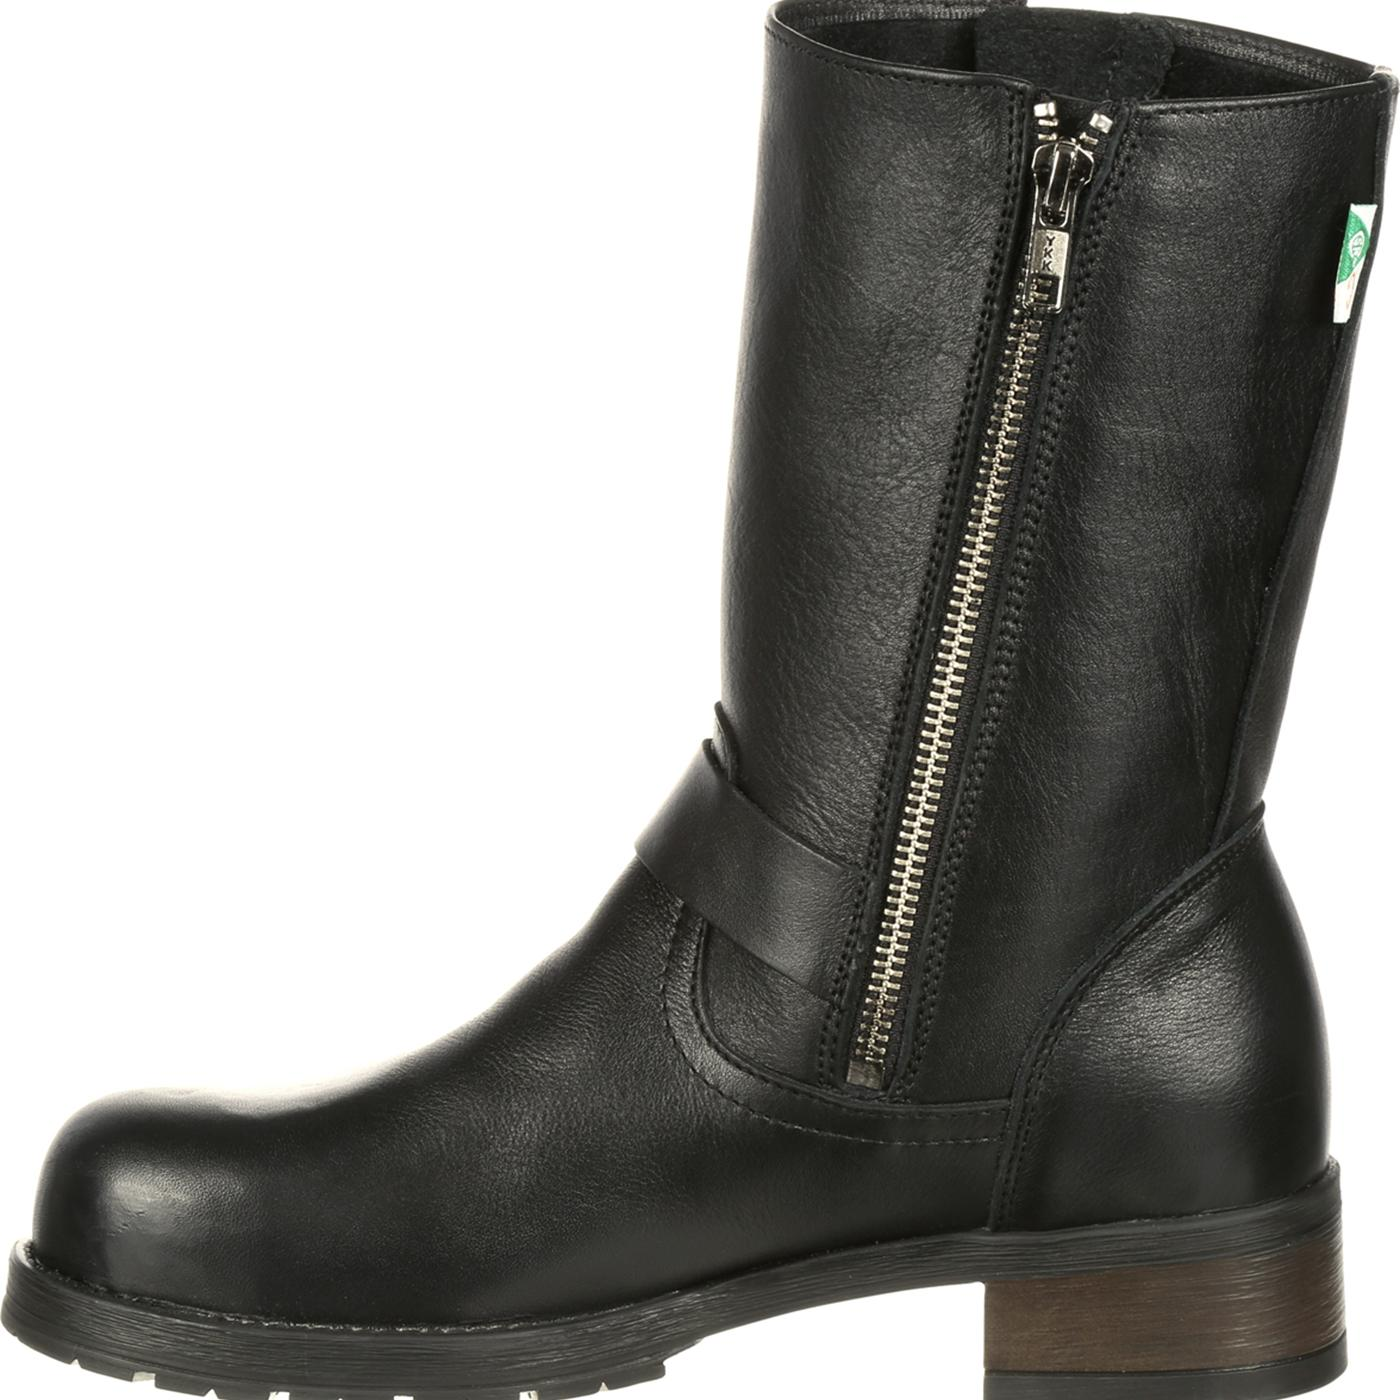 b29db3af847 Mellow Walk Vanessa Women's Steel Toe CSA-Approved Puncture-Resistant  Engineer Boot